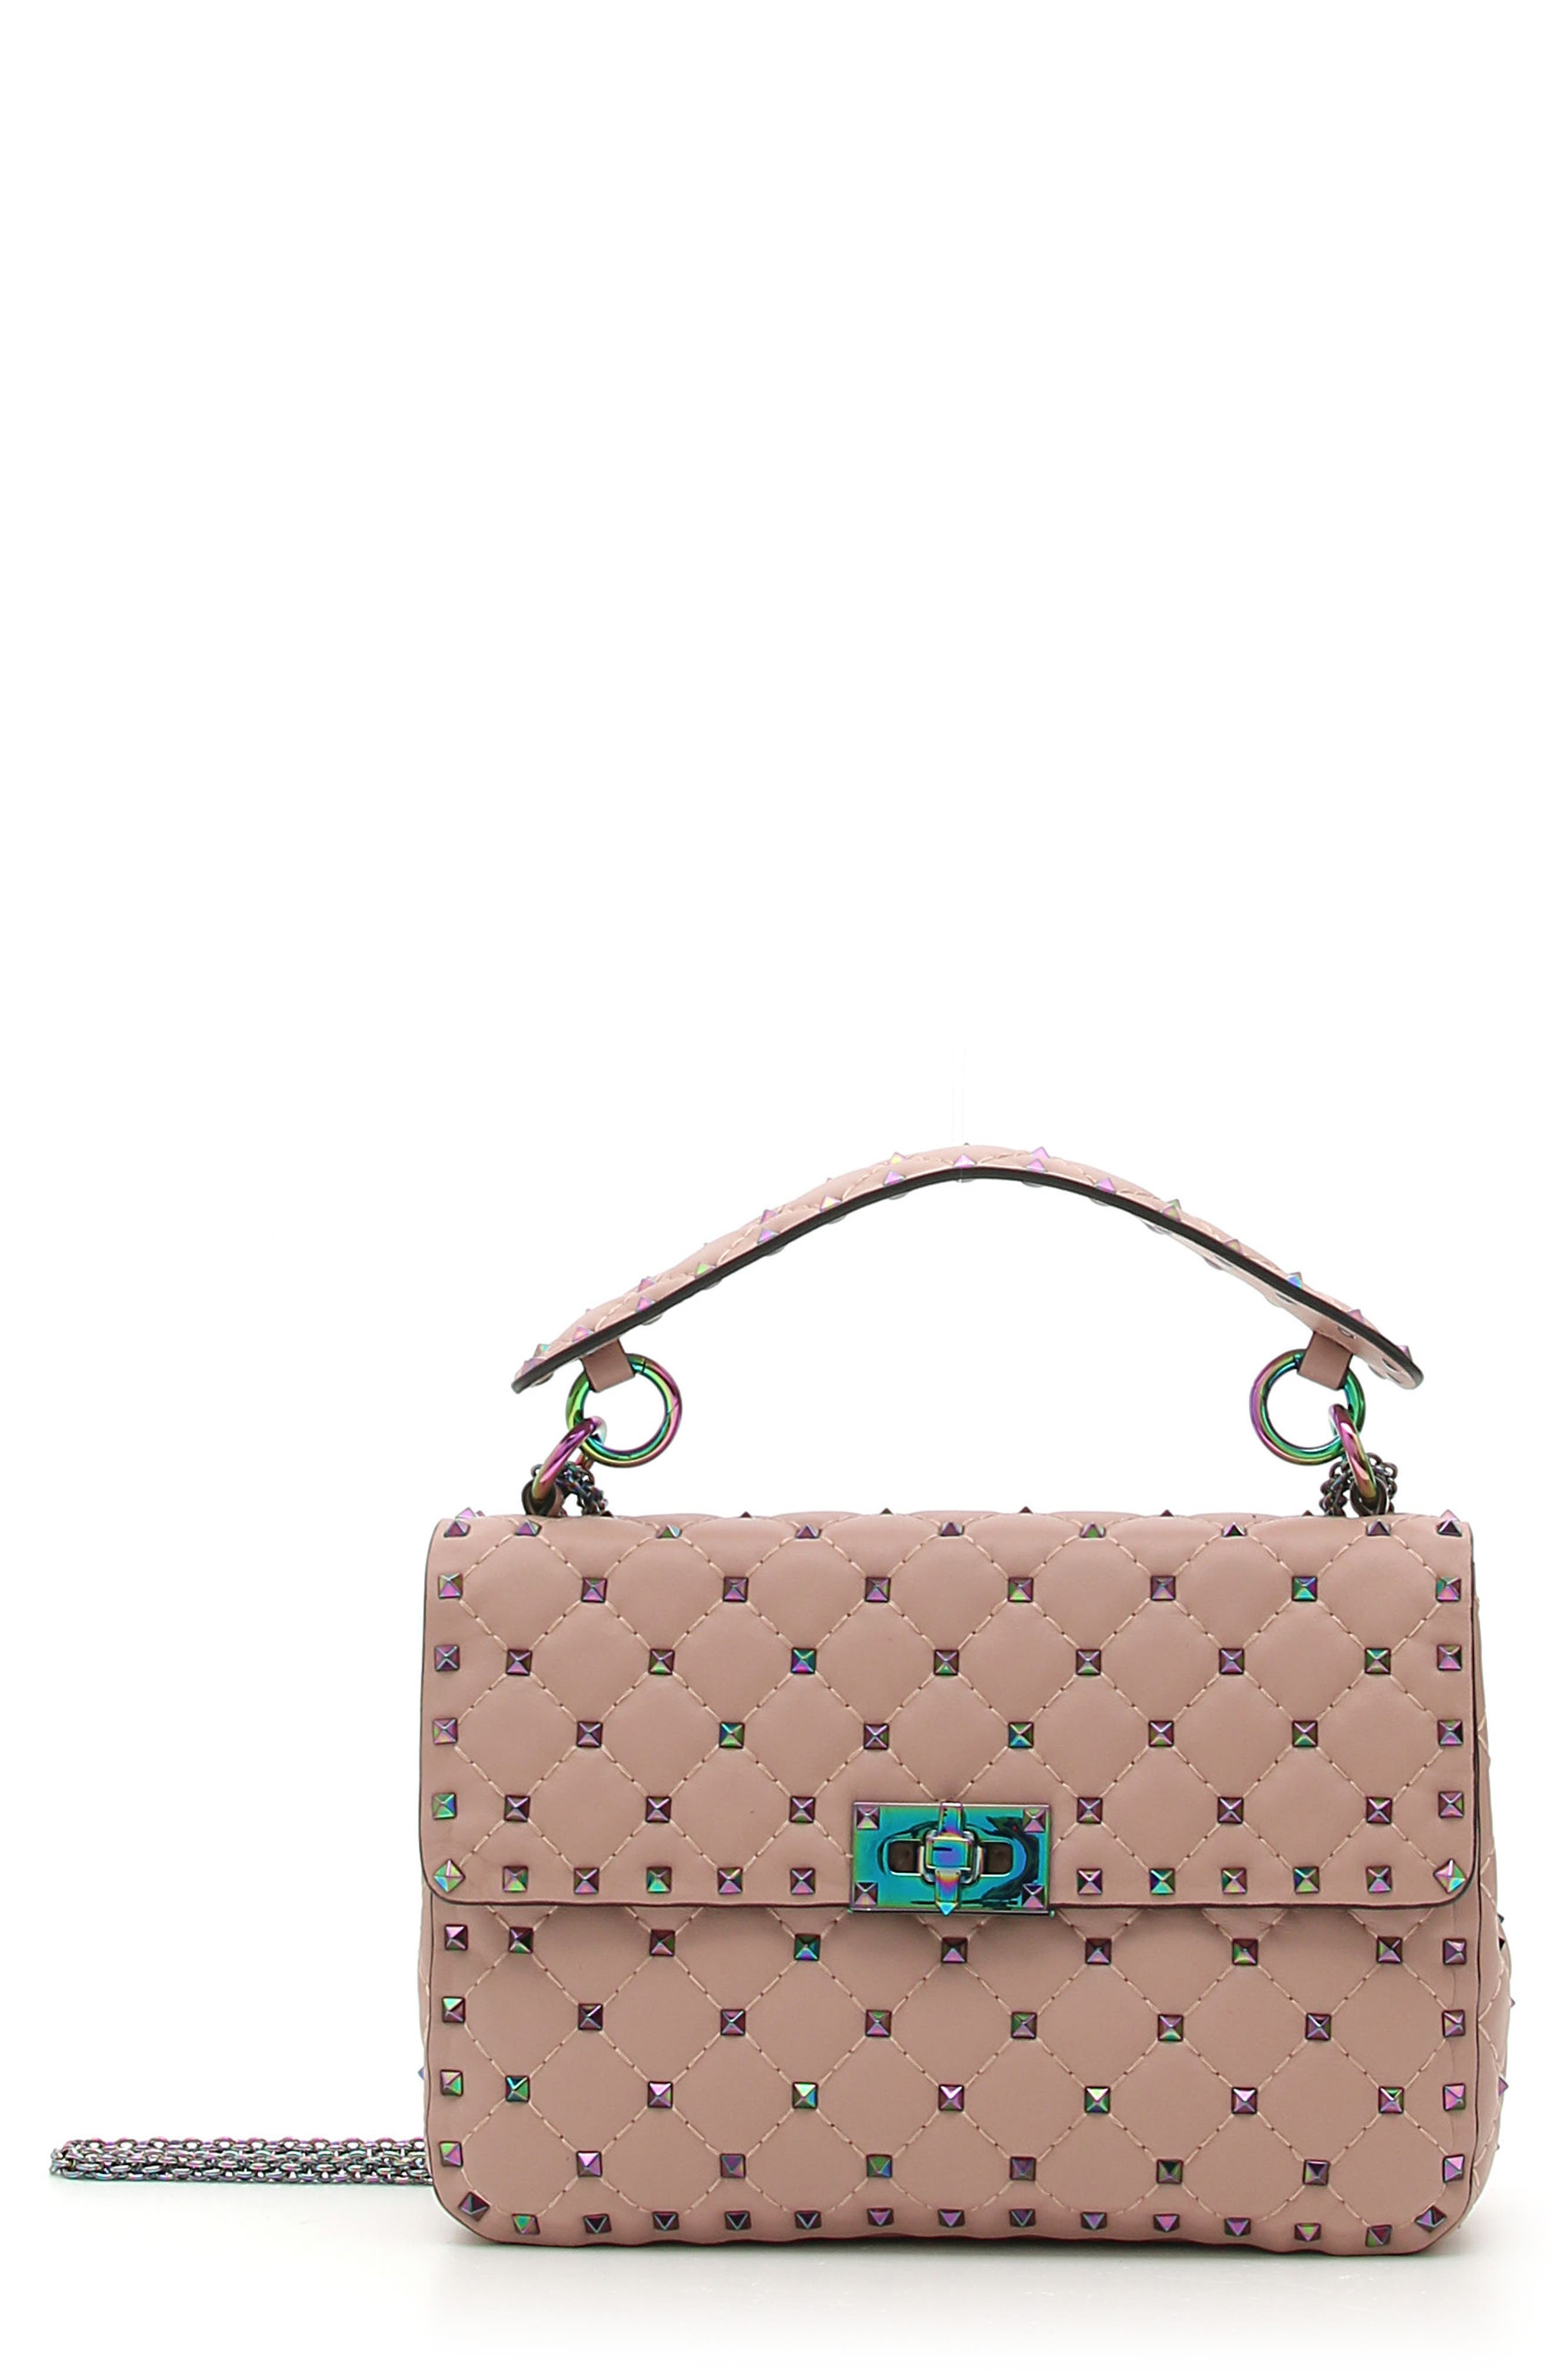 Rockstud Lambskin Leather Shoulder Bag,                             Main thumbnail 1, color,                             DUSTY ROSE